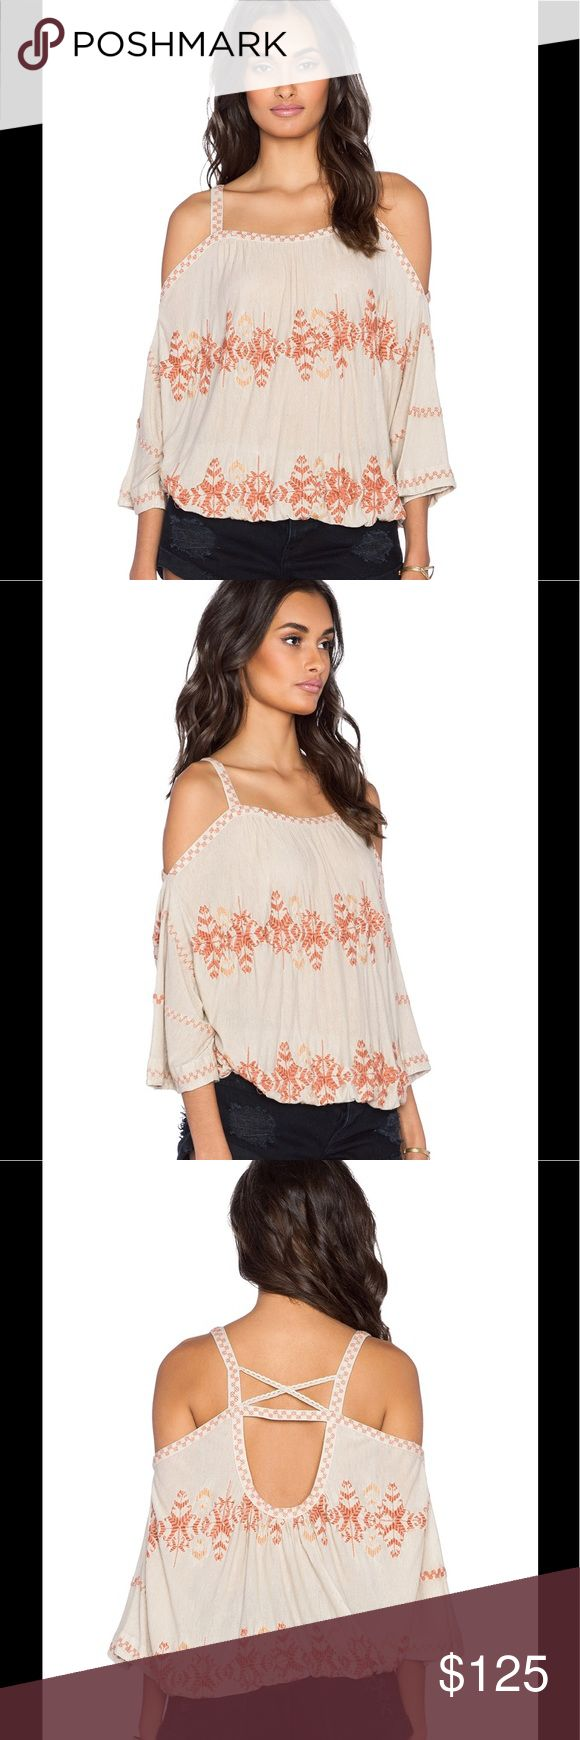 Free People Embroidered Bohemian Blouse Free People invokes a spirit of femininity and creativity. This is such a comfortable top in the bohemian style. The top features: 85% viscose , 15% linen Elasticized waist Embroidered trim Multi back cut-out Color - Dune Free People Tops Blouses